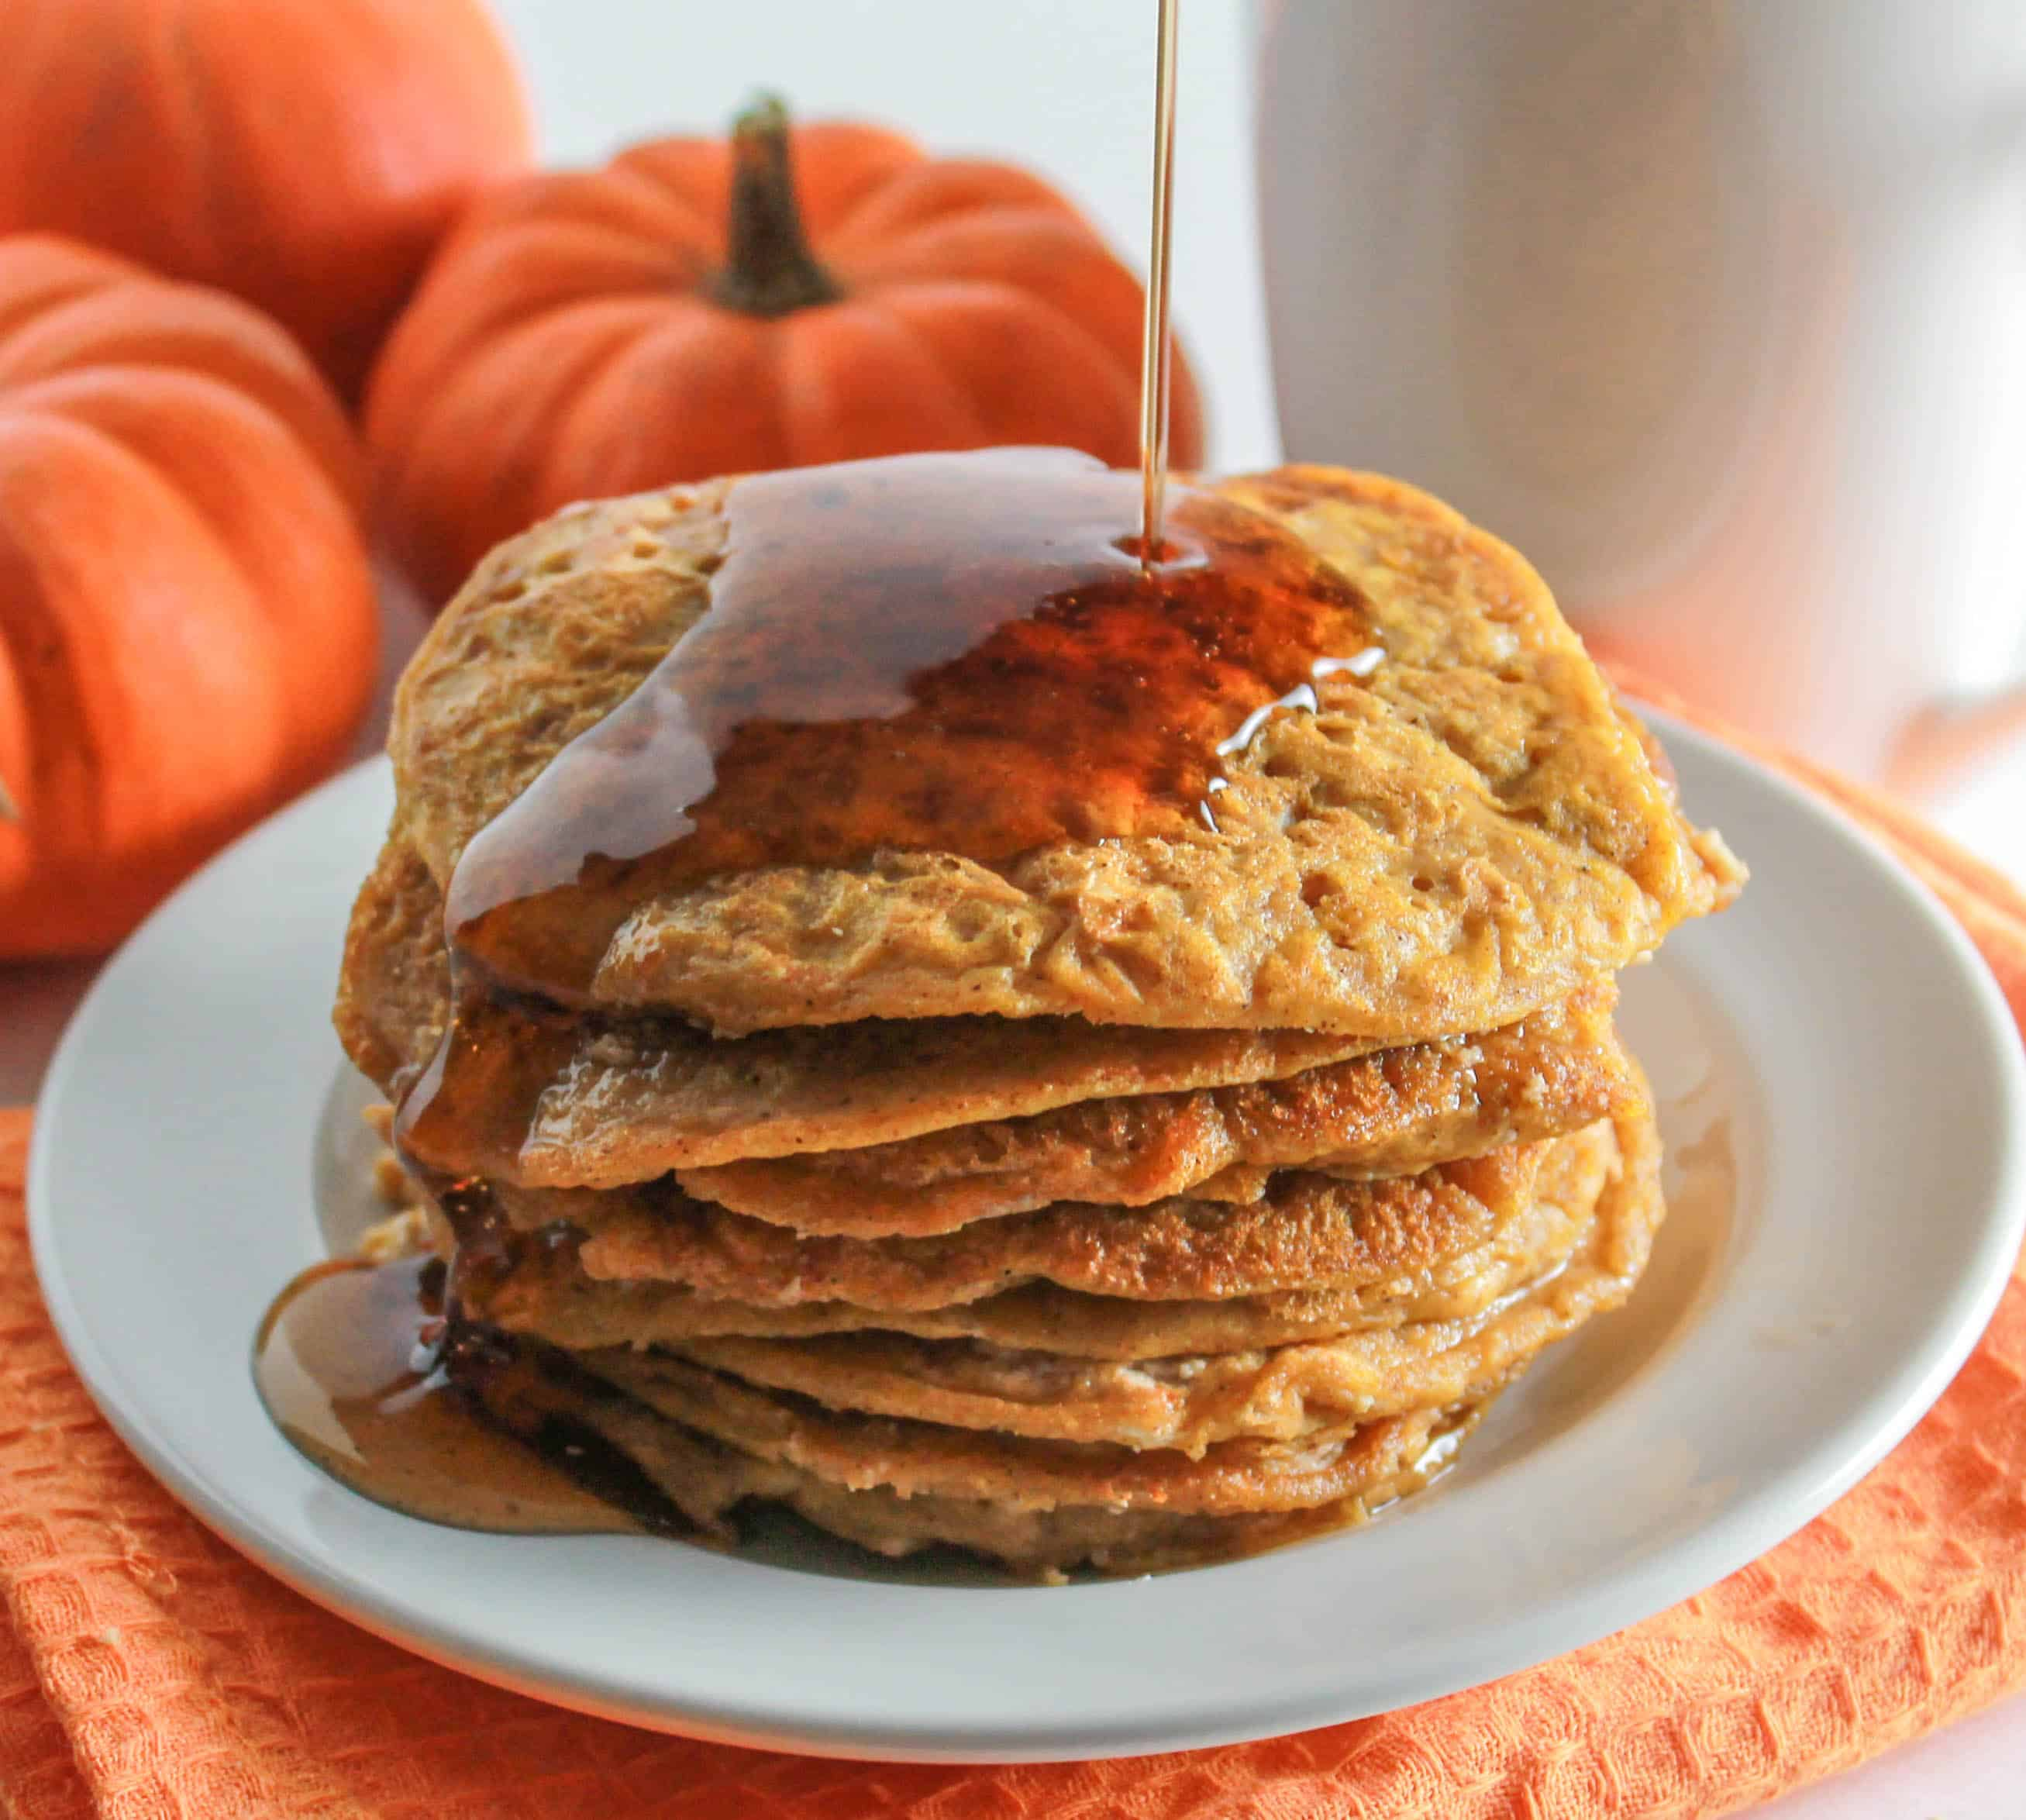 Pumpkin Cheesecake Pancakes | Destination Delish - Bits of pumpkin cheesecake packed inside fluffy pumpkin pancakes. It's the perfect autumn breakfast!